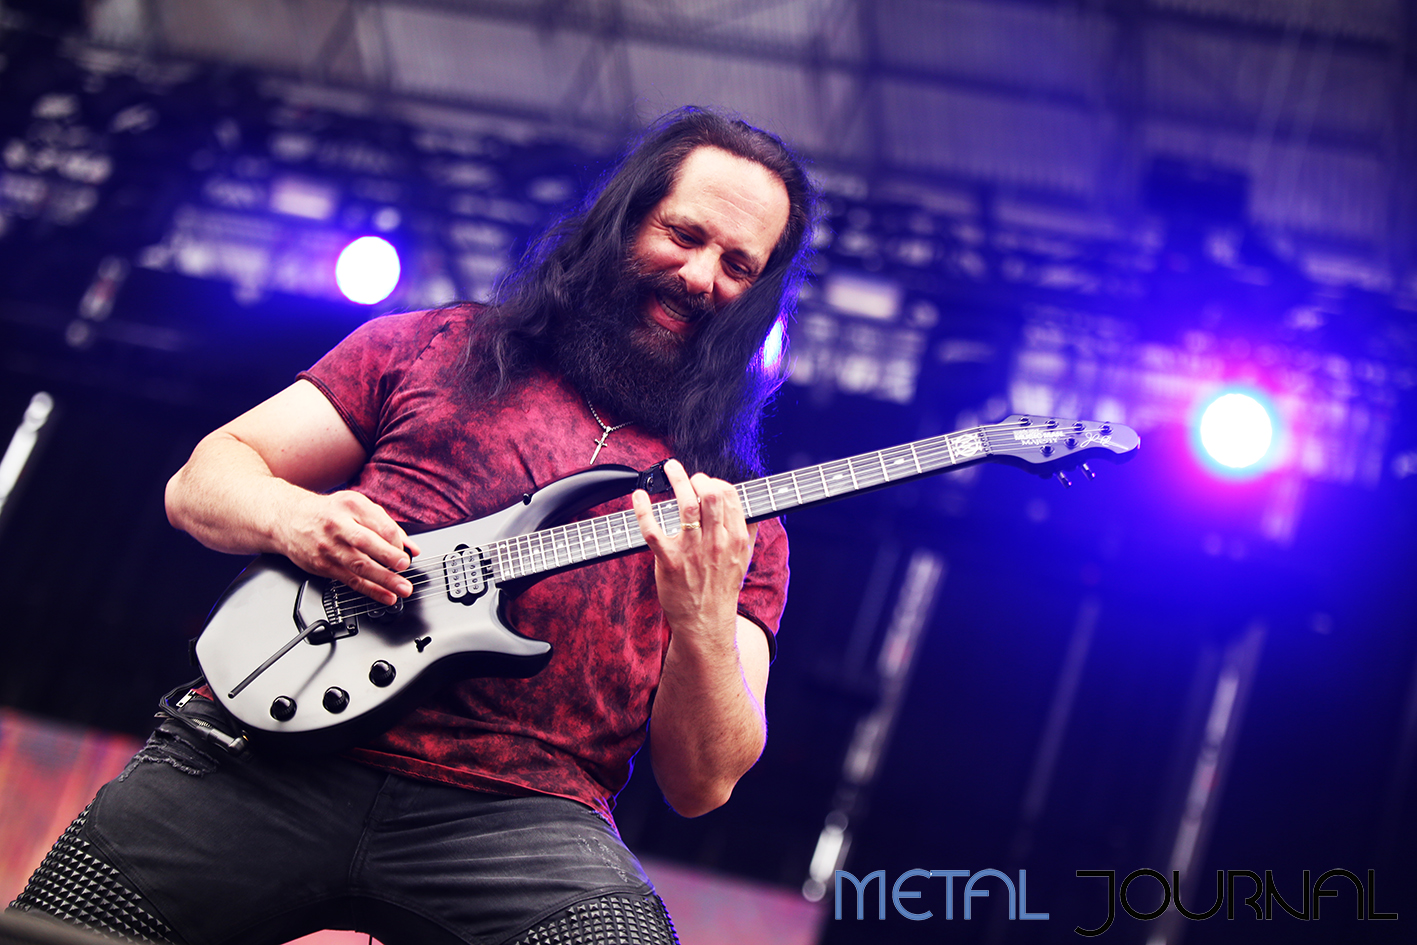 dream theater - metal journal rock fest barcelona 2019 pic 6